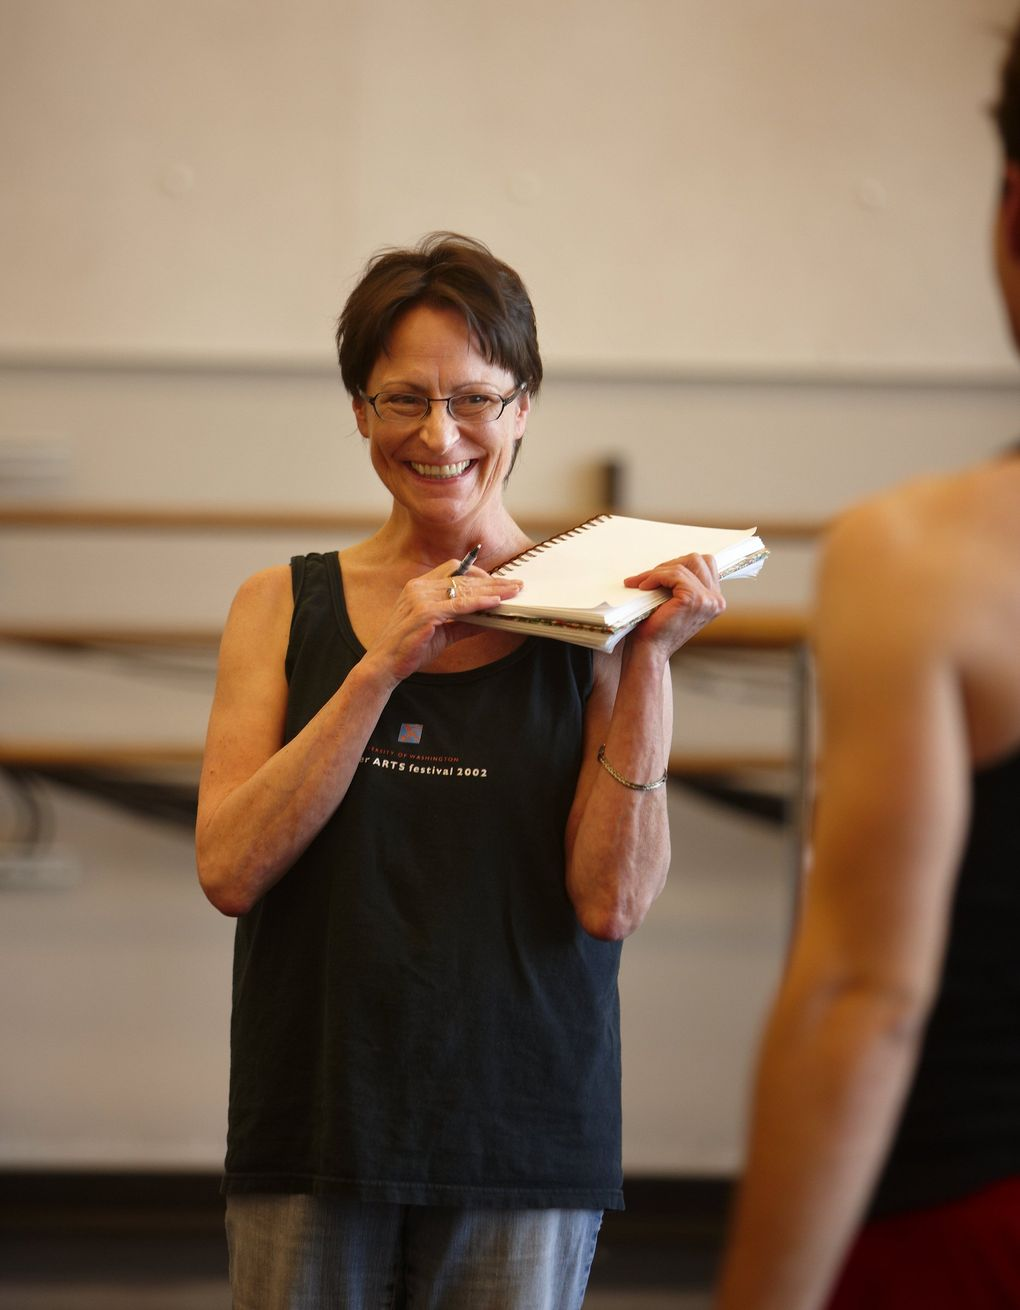 Hannah C. Wiley, director of Chamber Dance Company at the University of Washington. (Benjamin Benschneider / The Seattle Times, 2009)